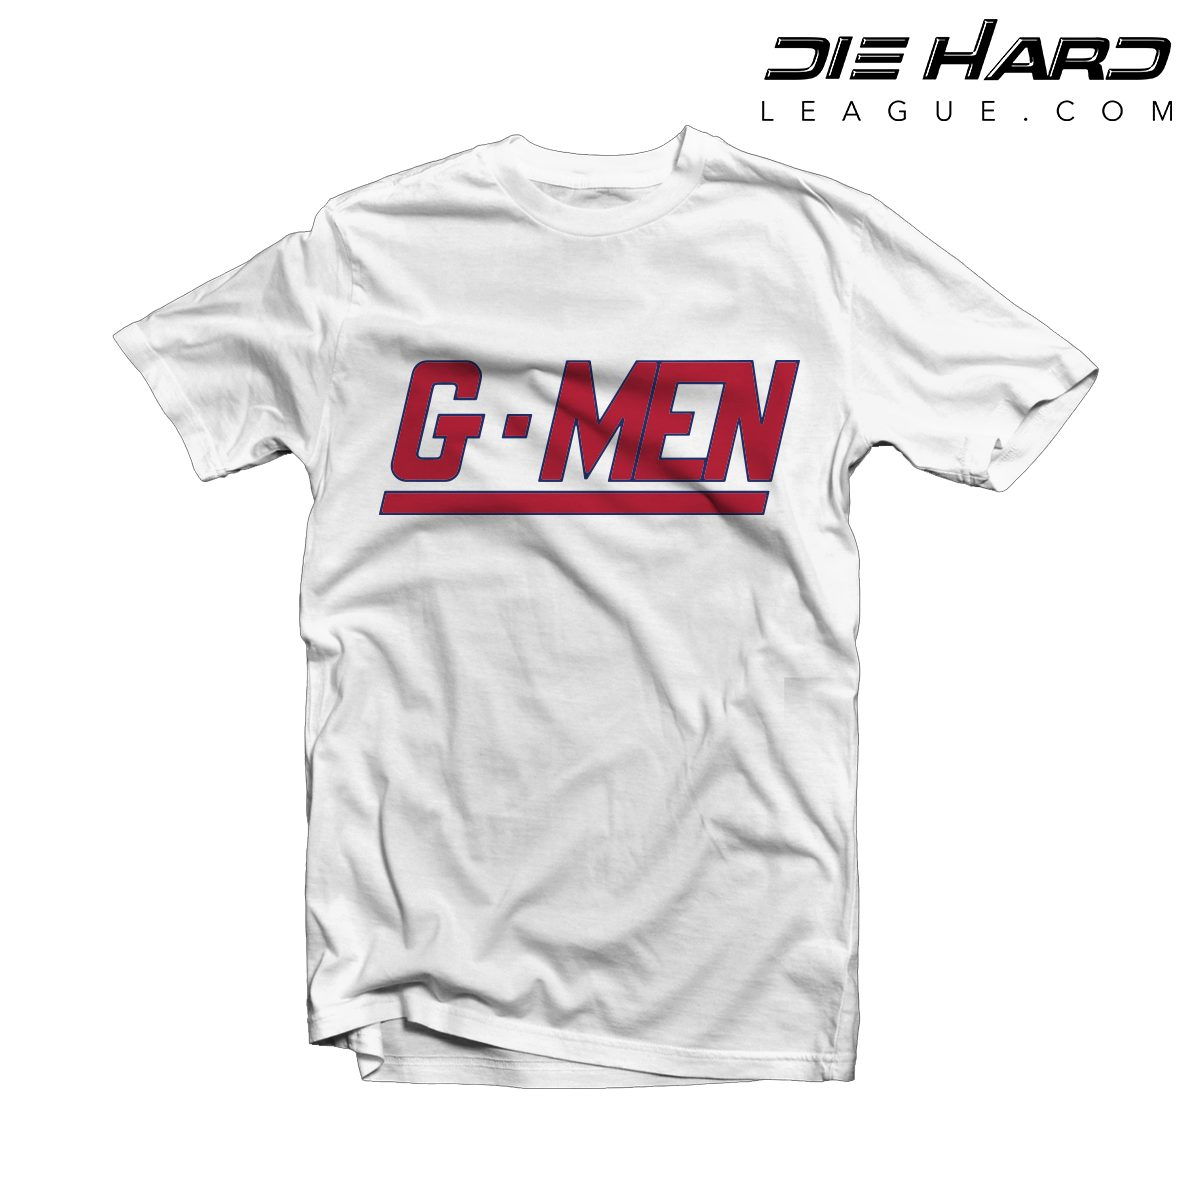 more photos 825a9 82f08 NY Giants Shirt - New York Giants GMEN White Red Tee